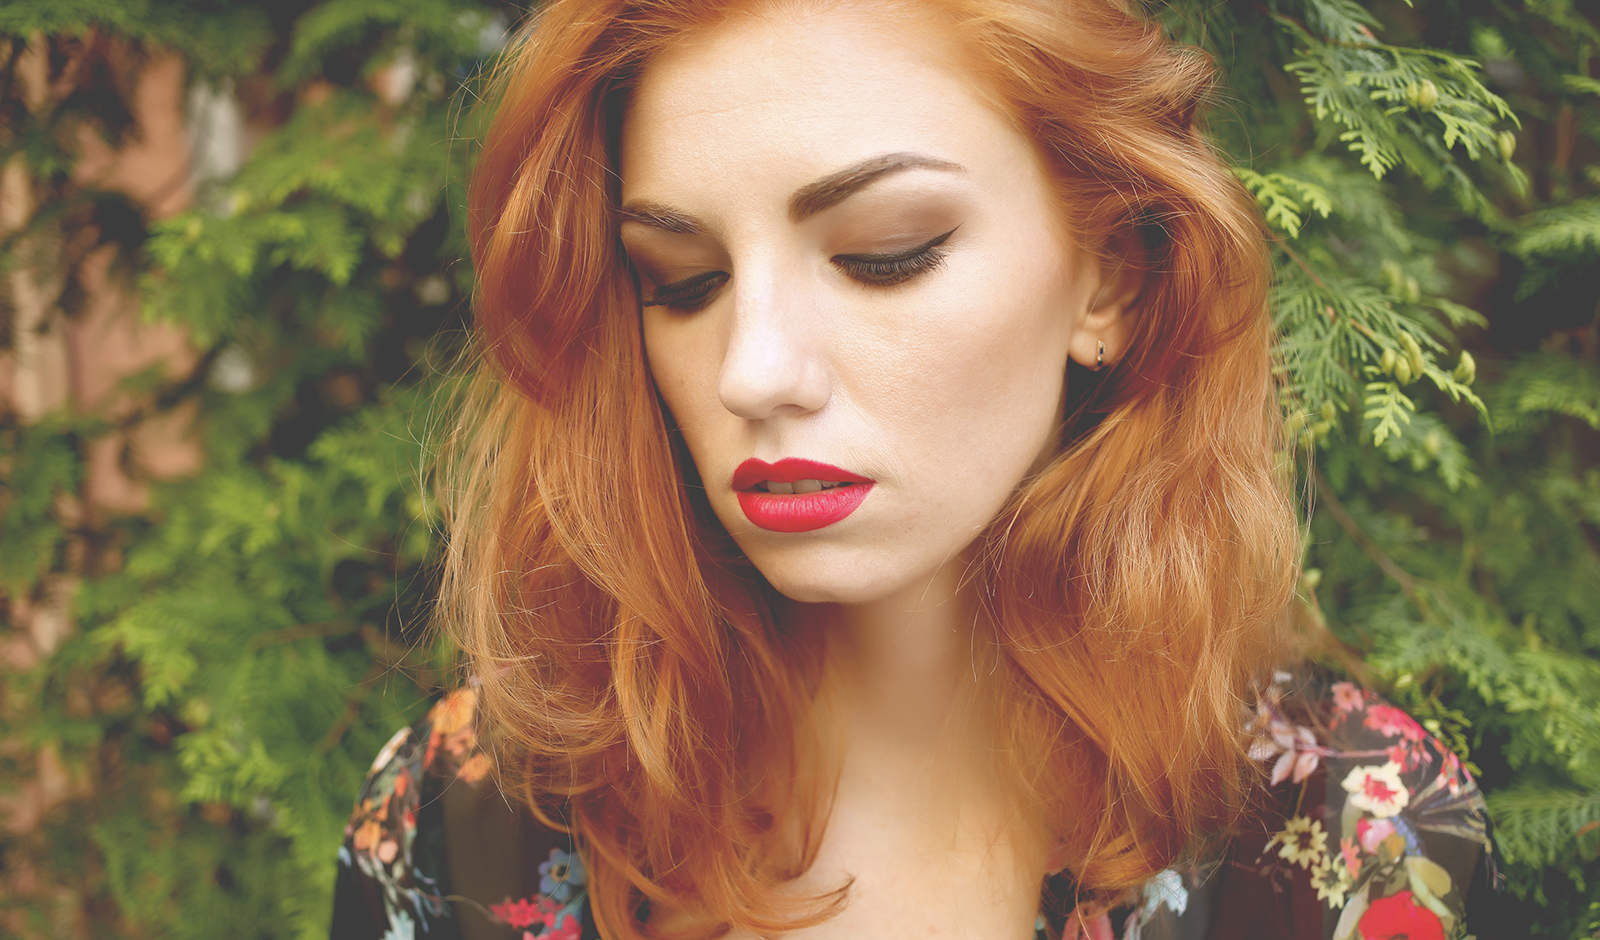 which-colors-looks-best-on-redheads-redhead-girl-wearing-black-floral